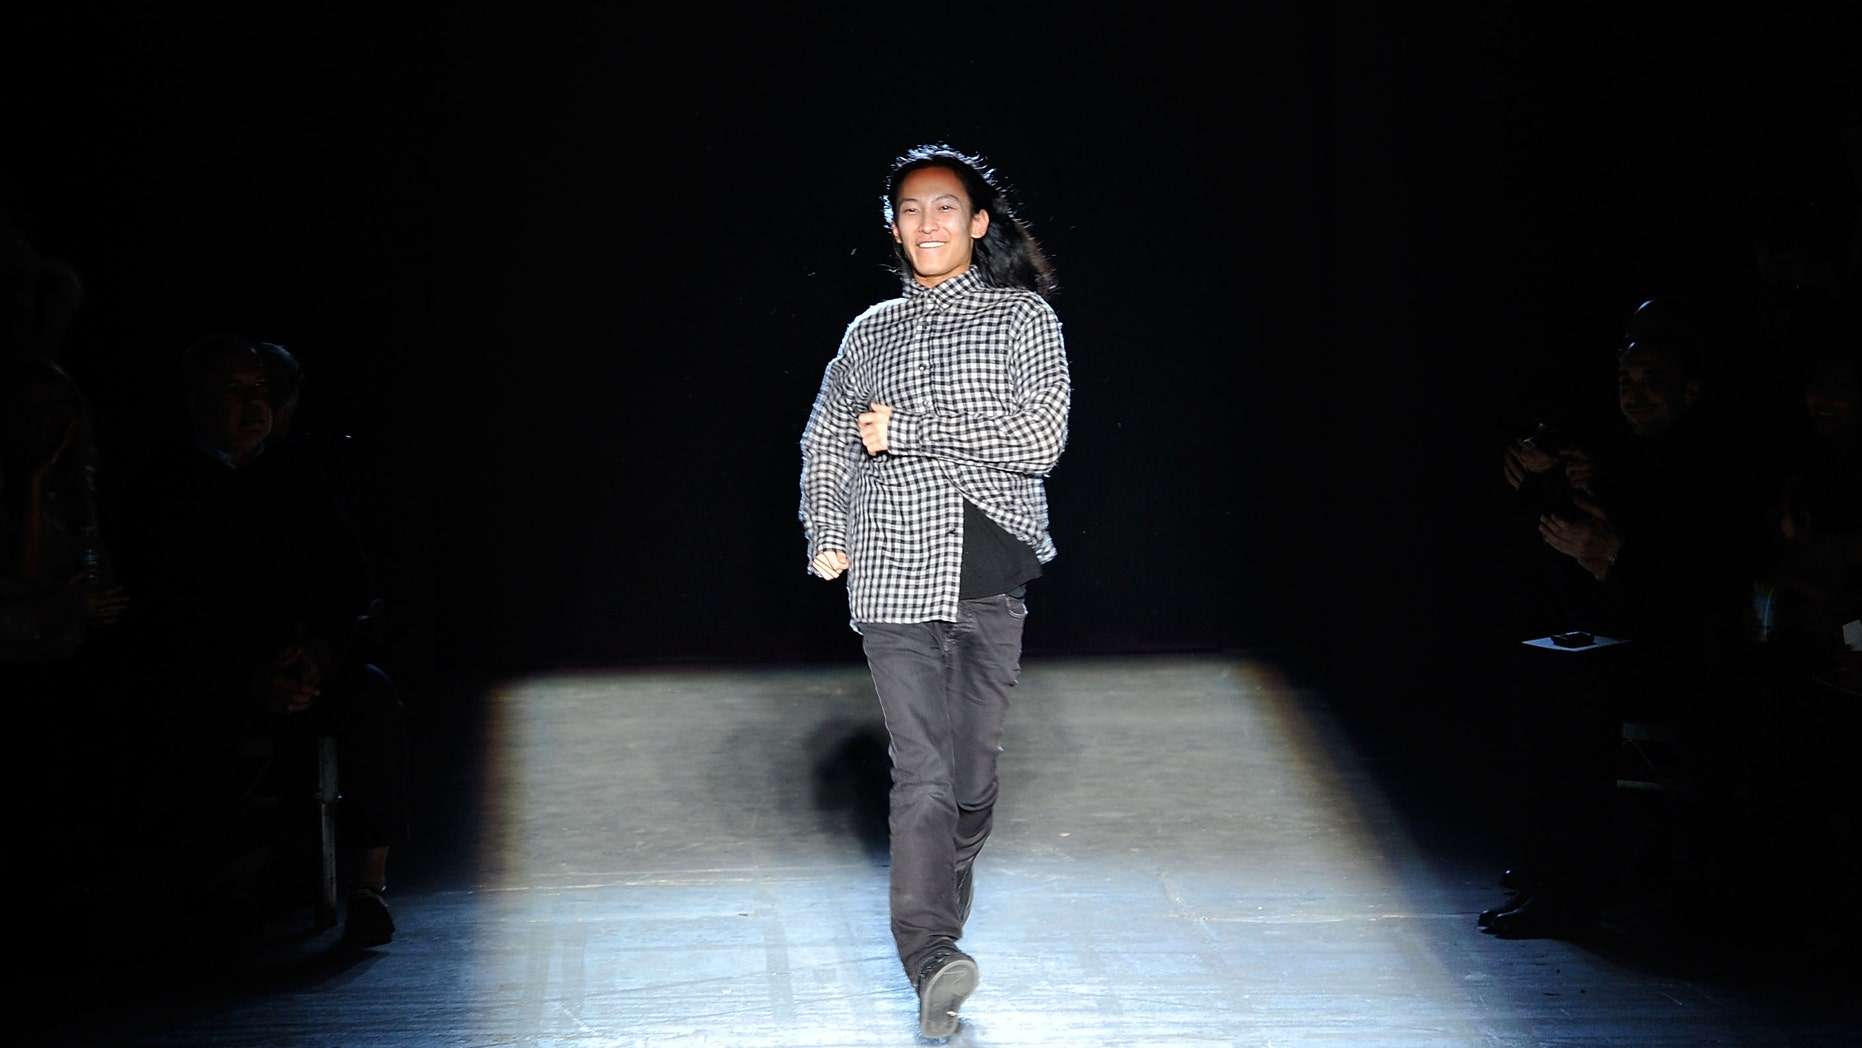 Designer Alexander Wang named new Creative Director for Balenciaga. (Photo by Stefan Gosatti/Getty Images)